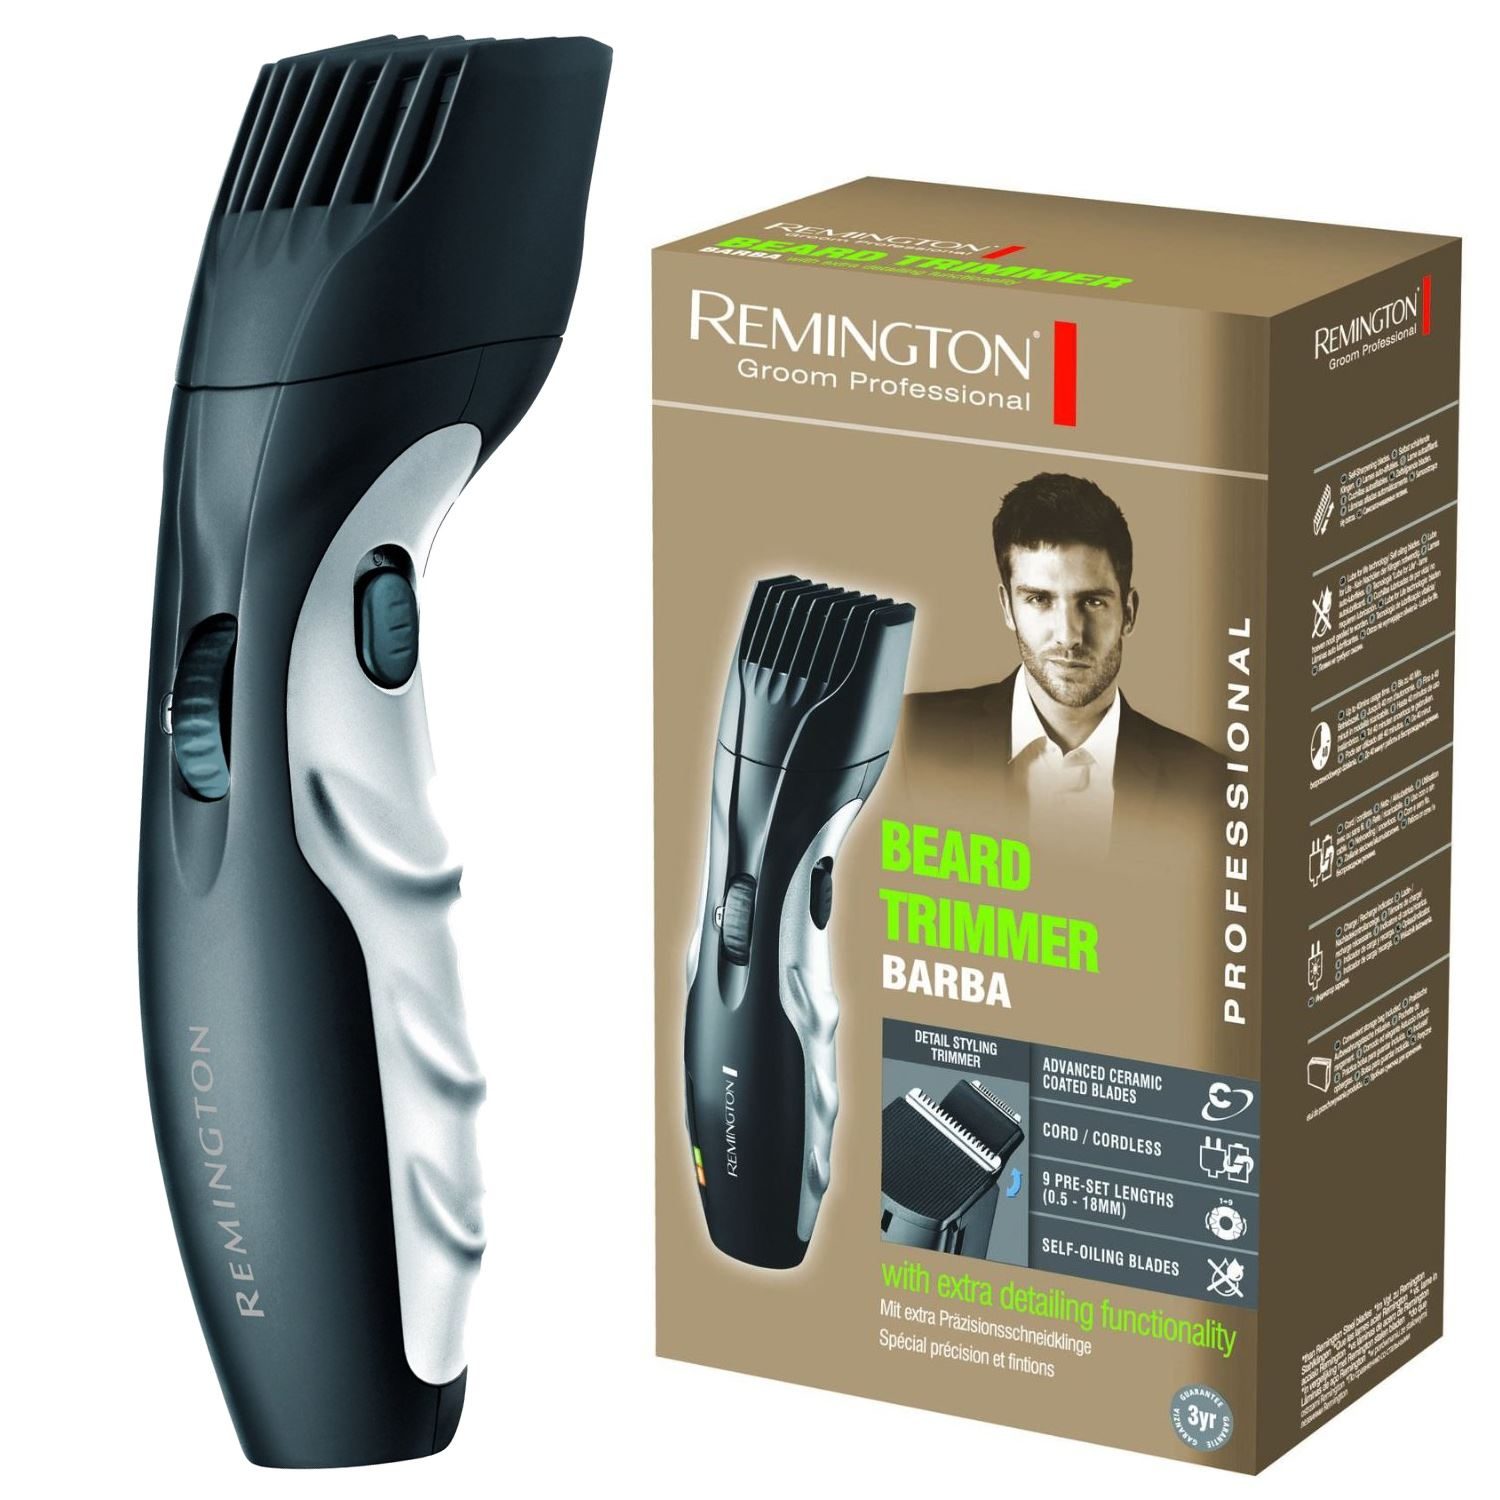 new remington mb320c barba beard trimmer cordless ceramic blades zoom wheel 4008496590087 ebay. Black Bedroom Furniture Sets. Home Design Ideas